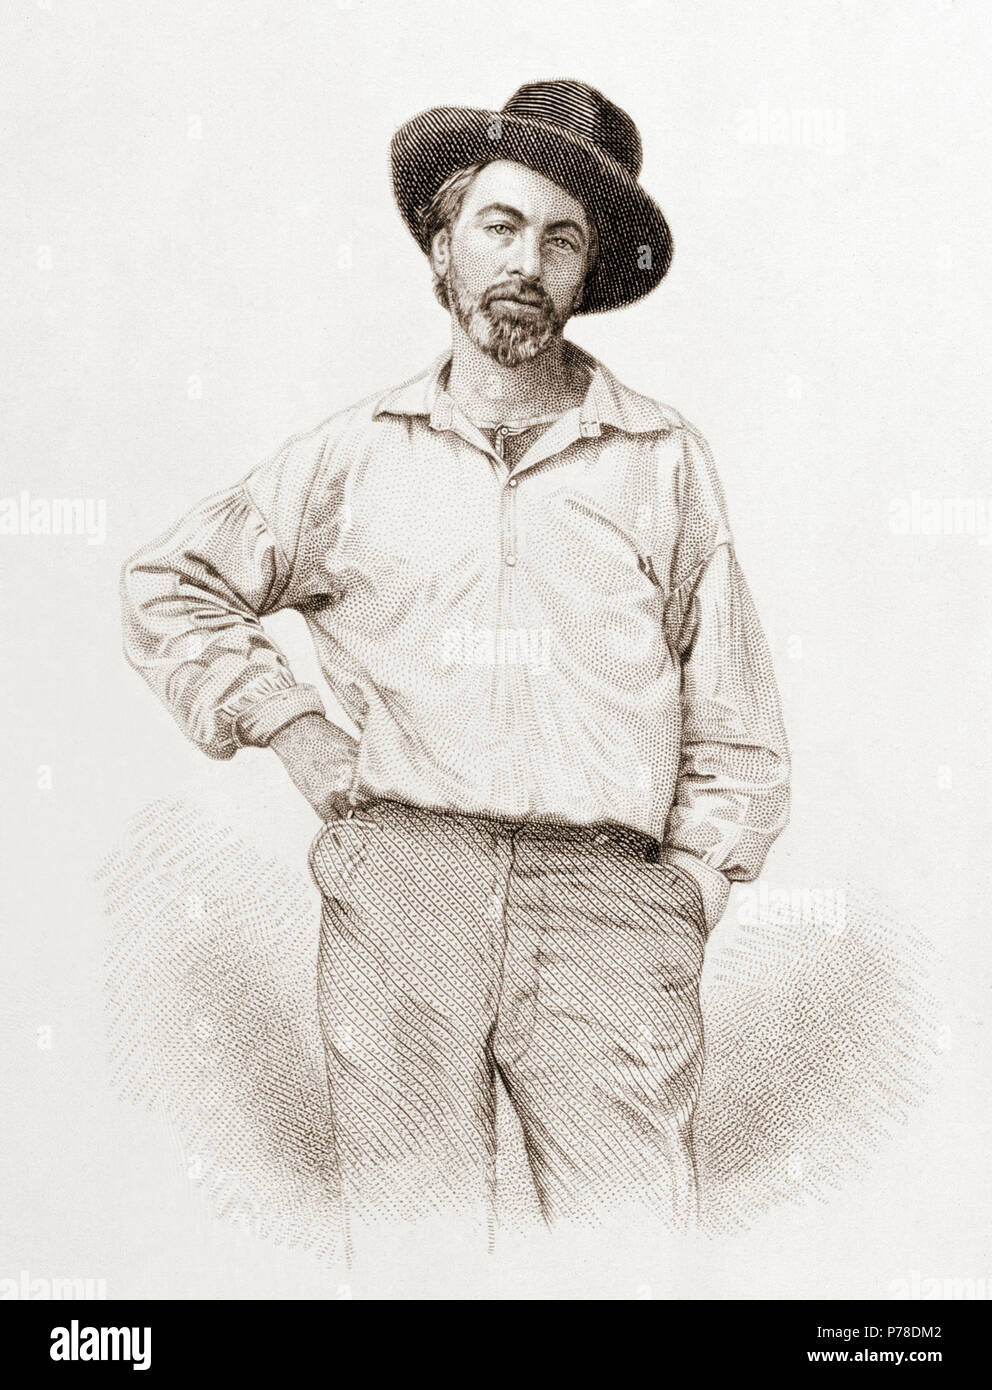 Walt Whitman (1819-1892), age 37, frontispiece to Leaves of grass, Fulton St., Brooklyn, N.Y., 1855, steel engraving by Samuel Hollyer from a lost daguerreotype by Gabriel Harrison. . July 1854 63 Walt Whitman, steel engraving, July 1854 - Stock Image